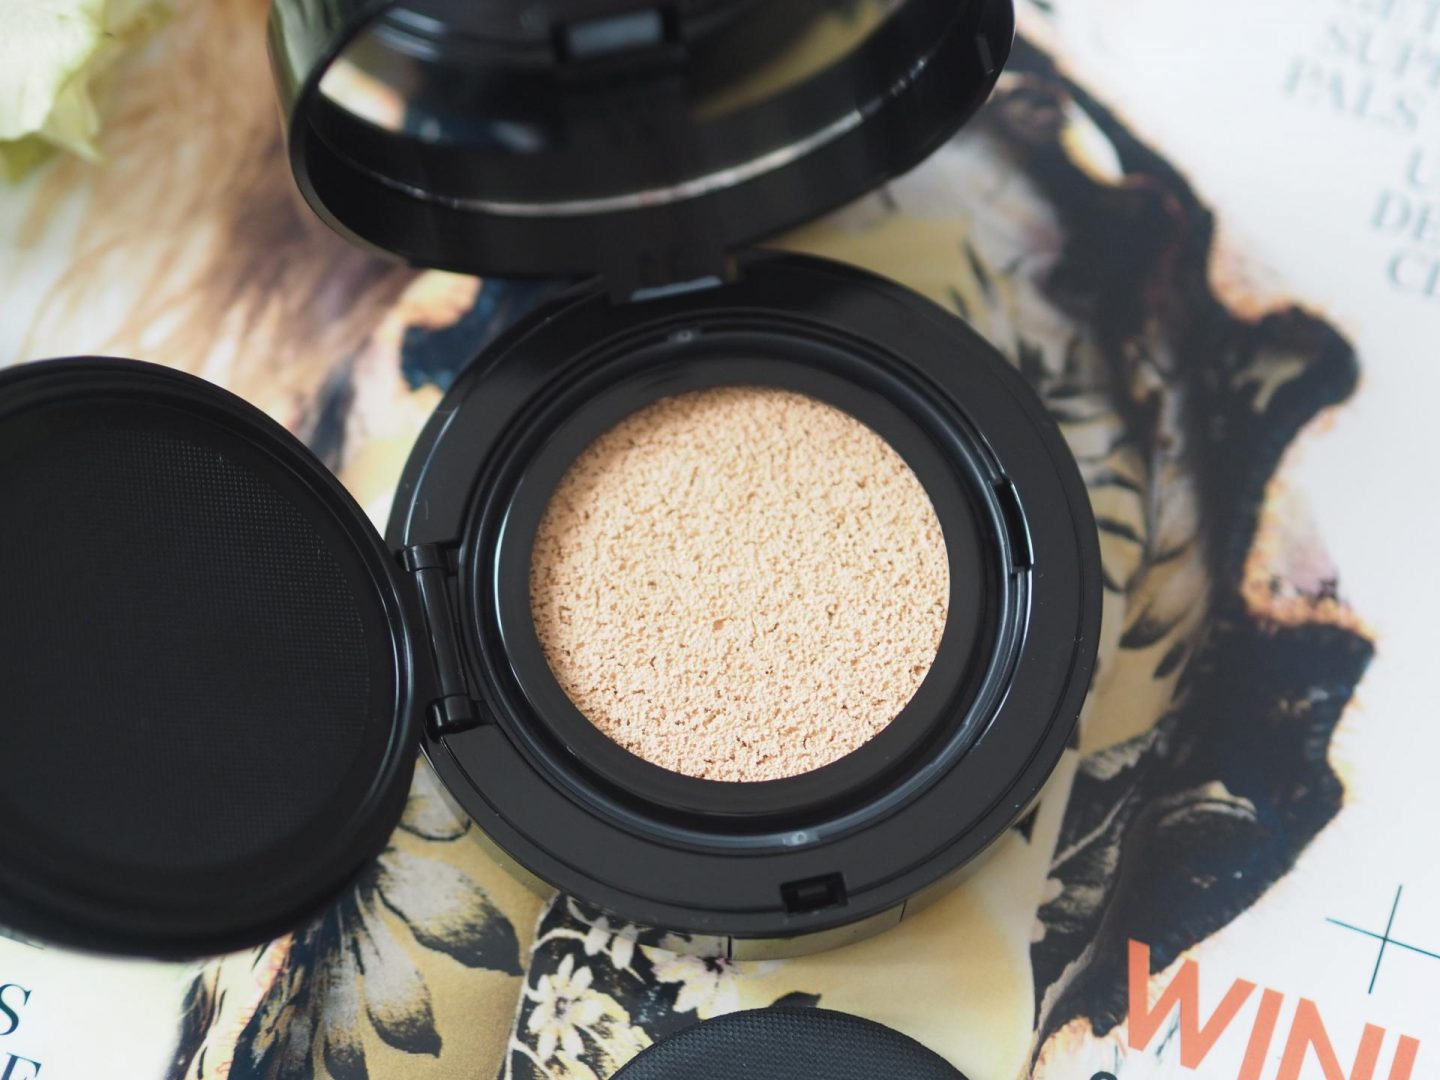 New Make-Up Products - Product: Lancôme Cushion Highlighter – Limited Edition Olympia le Tan